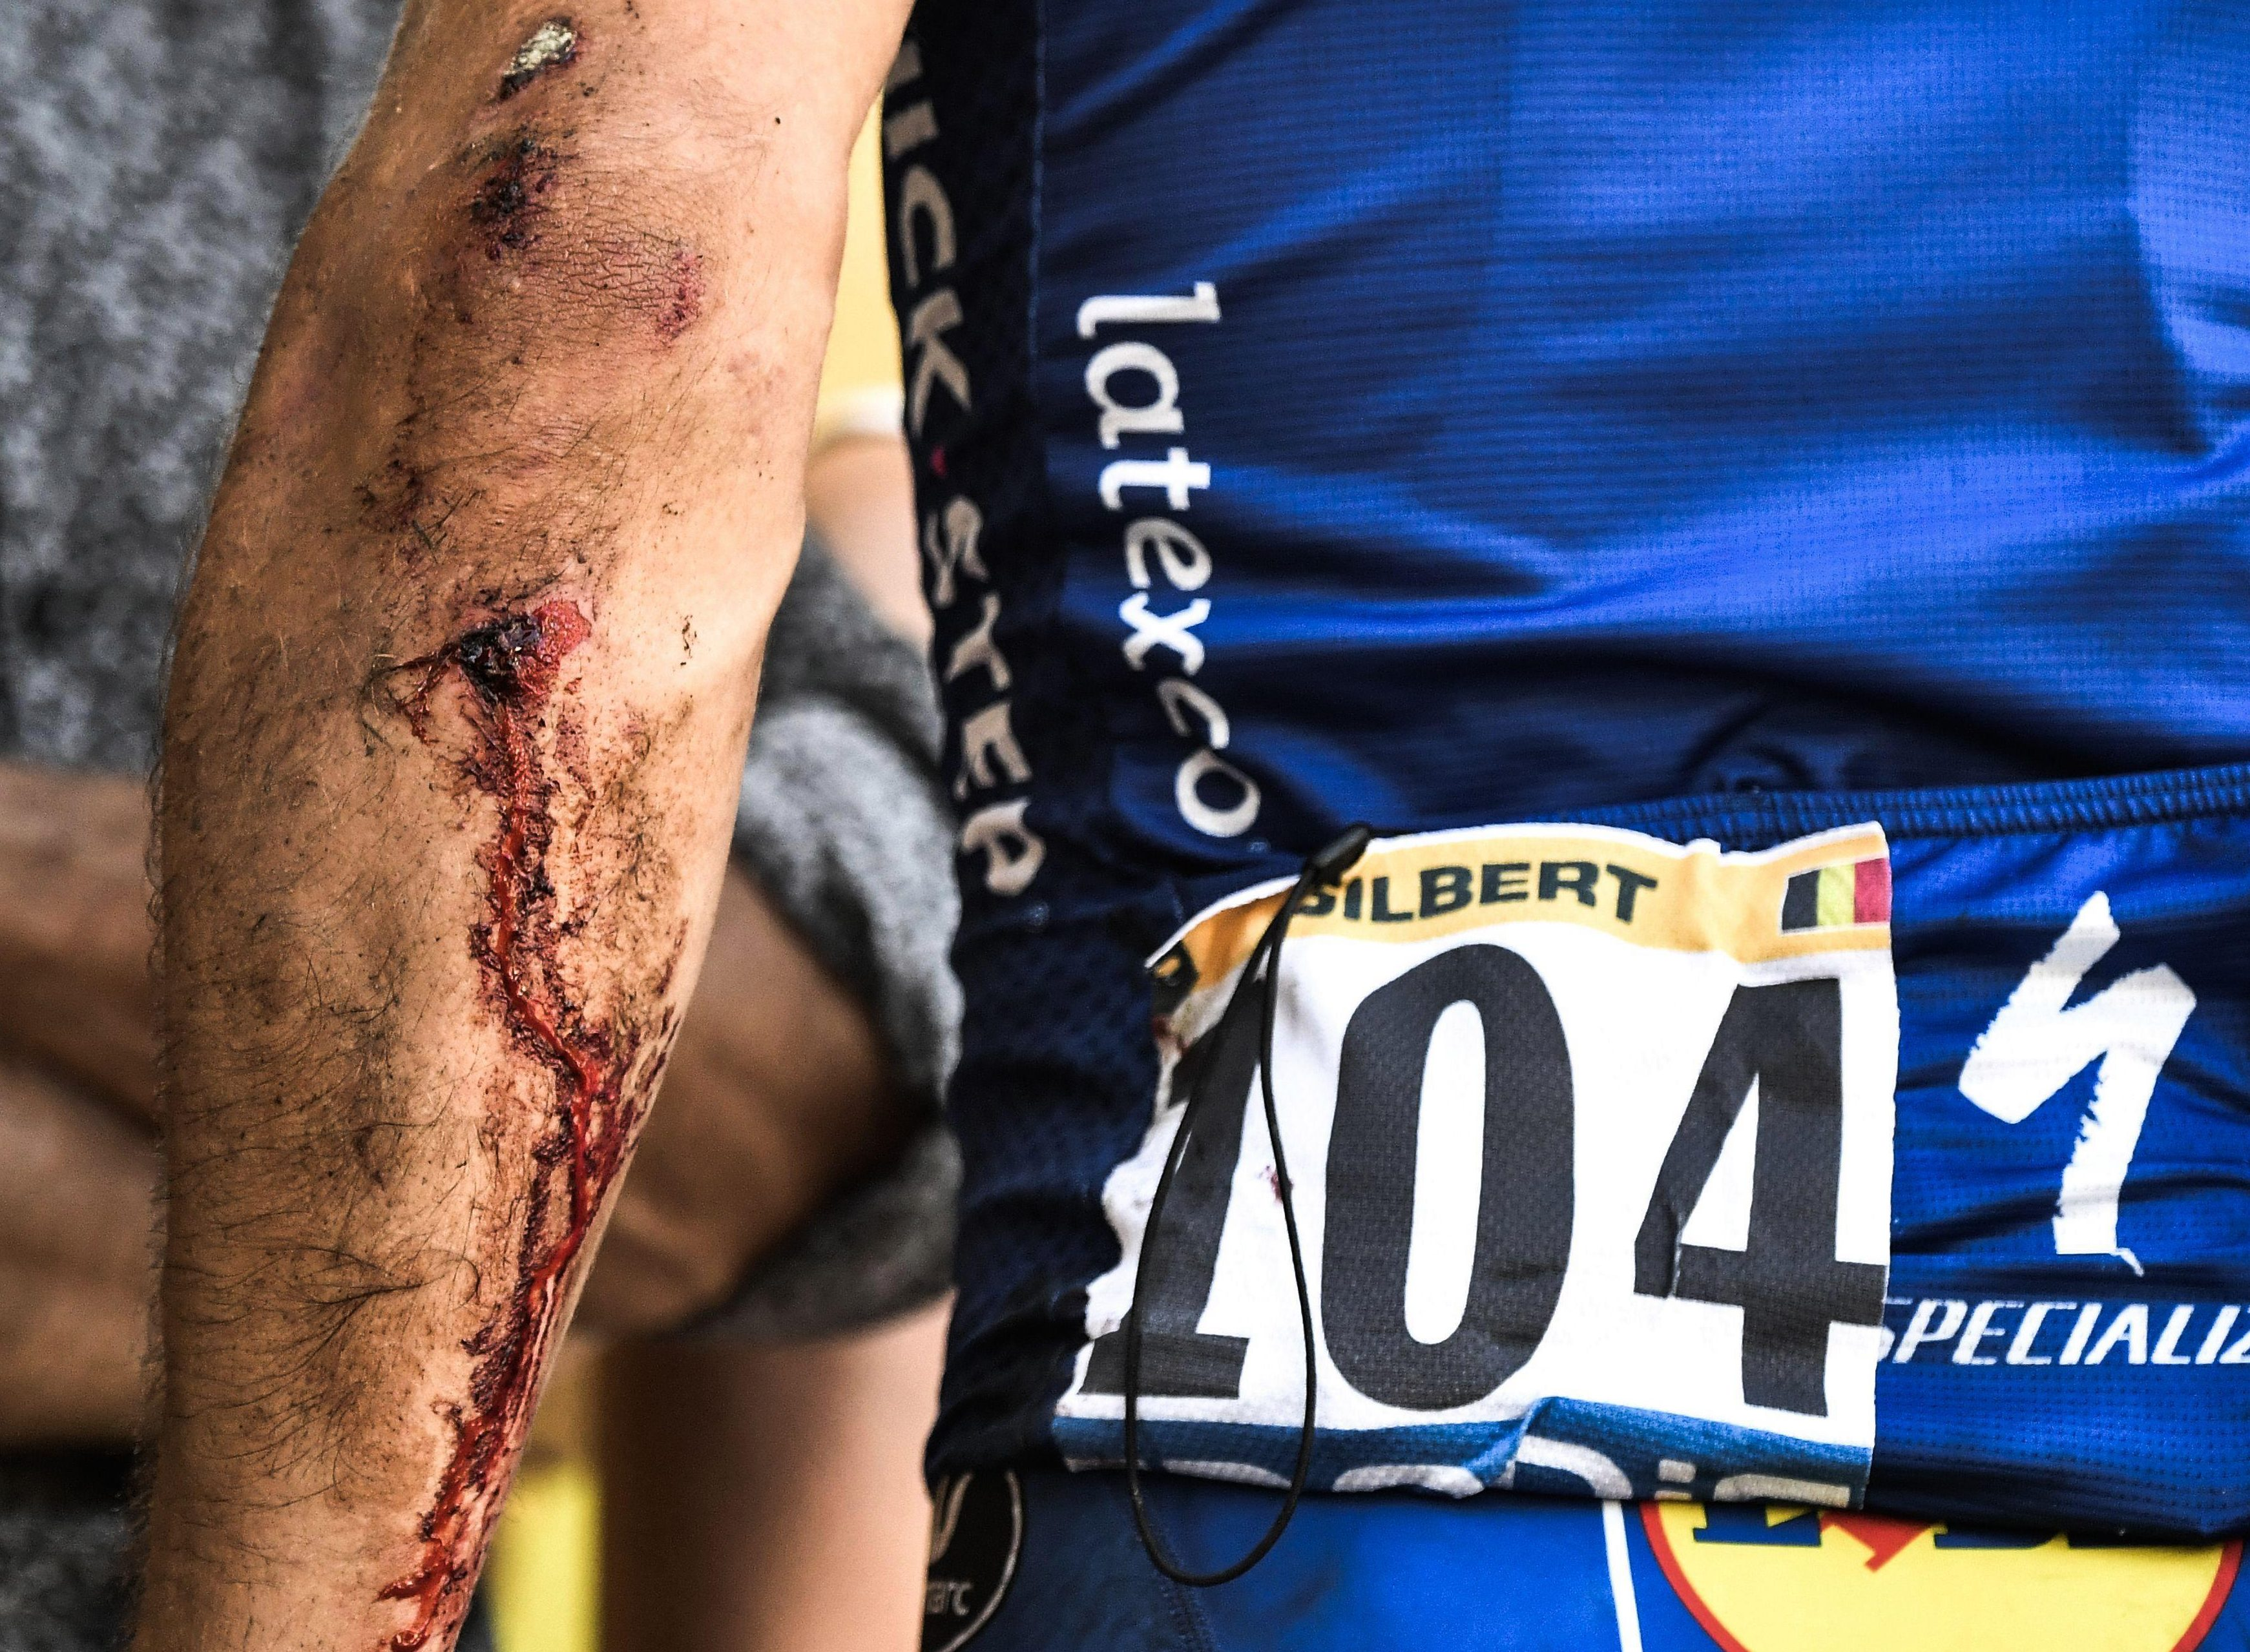 Philippe Gilbert shows his elbow after a fall that was clearly as bad as it looked